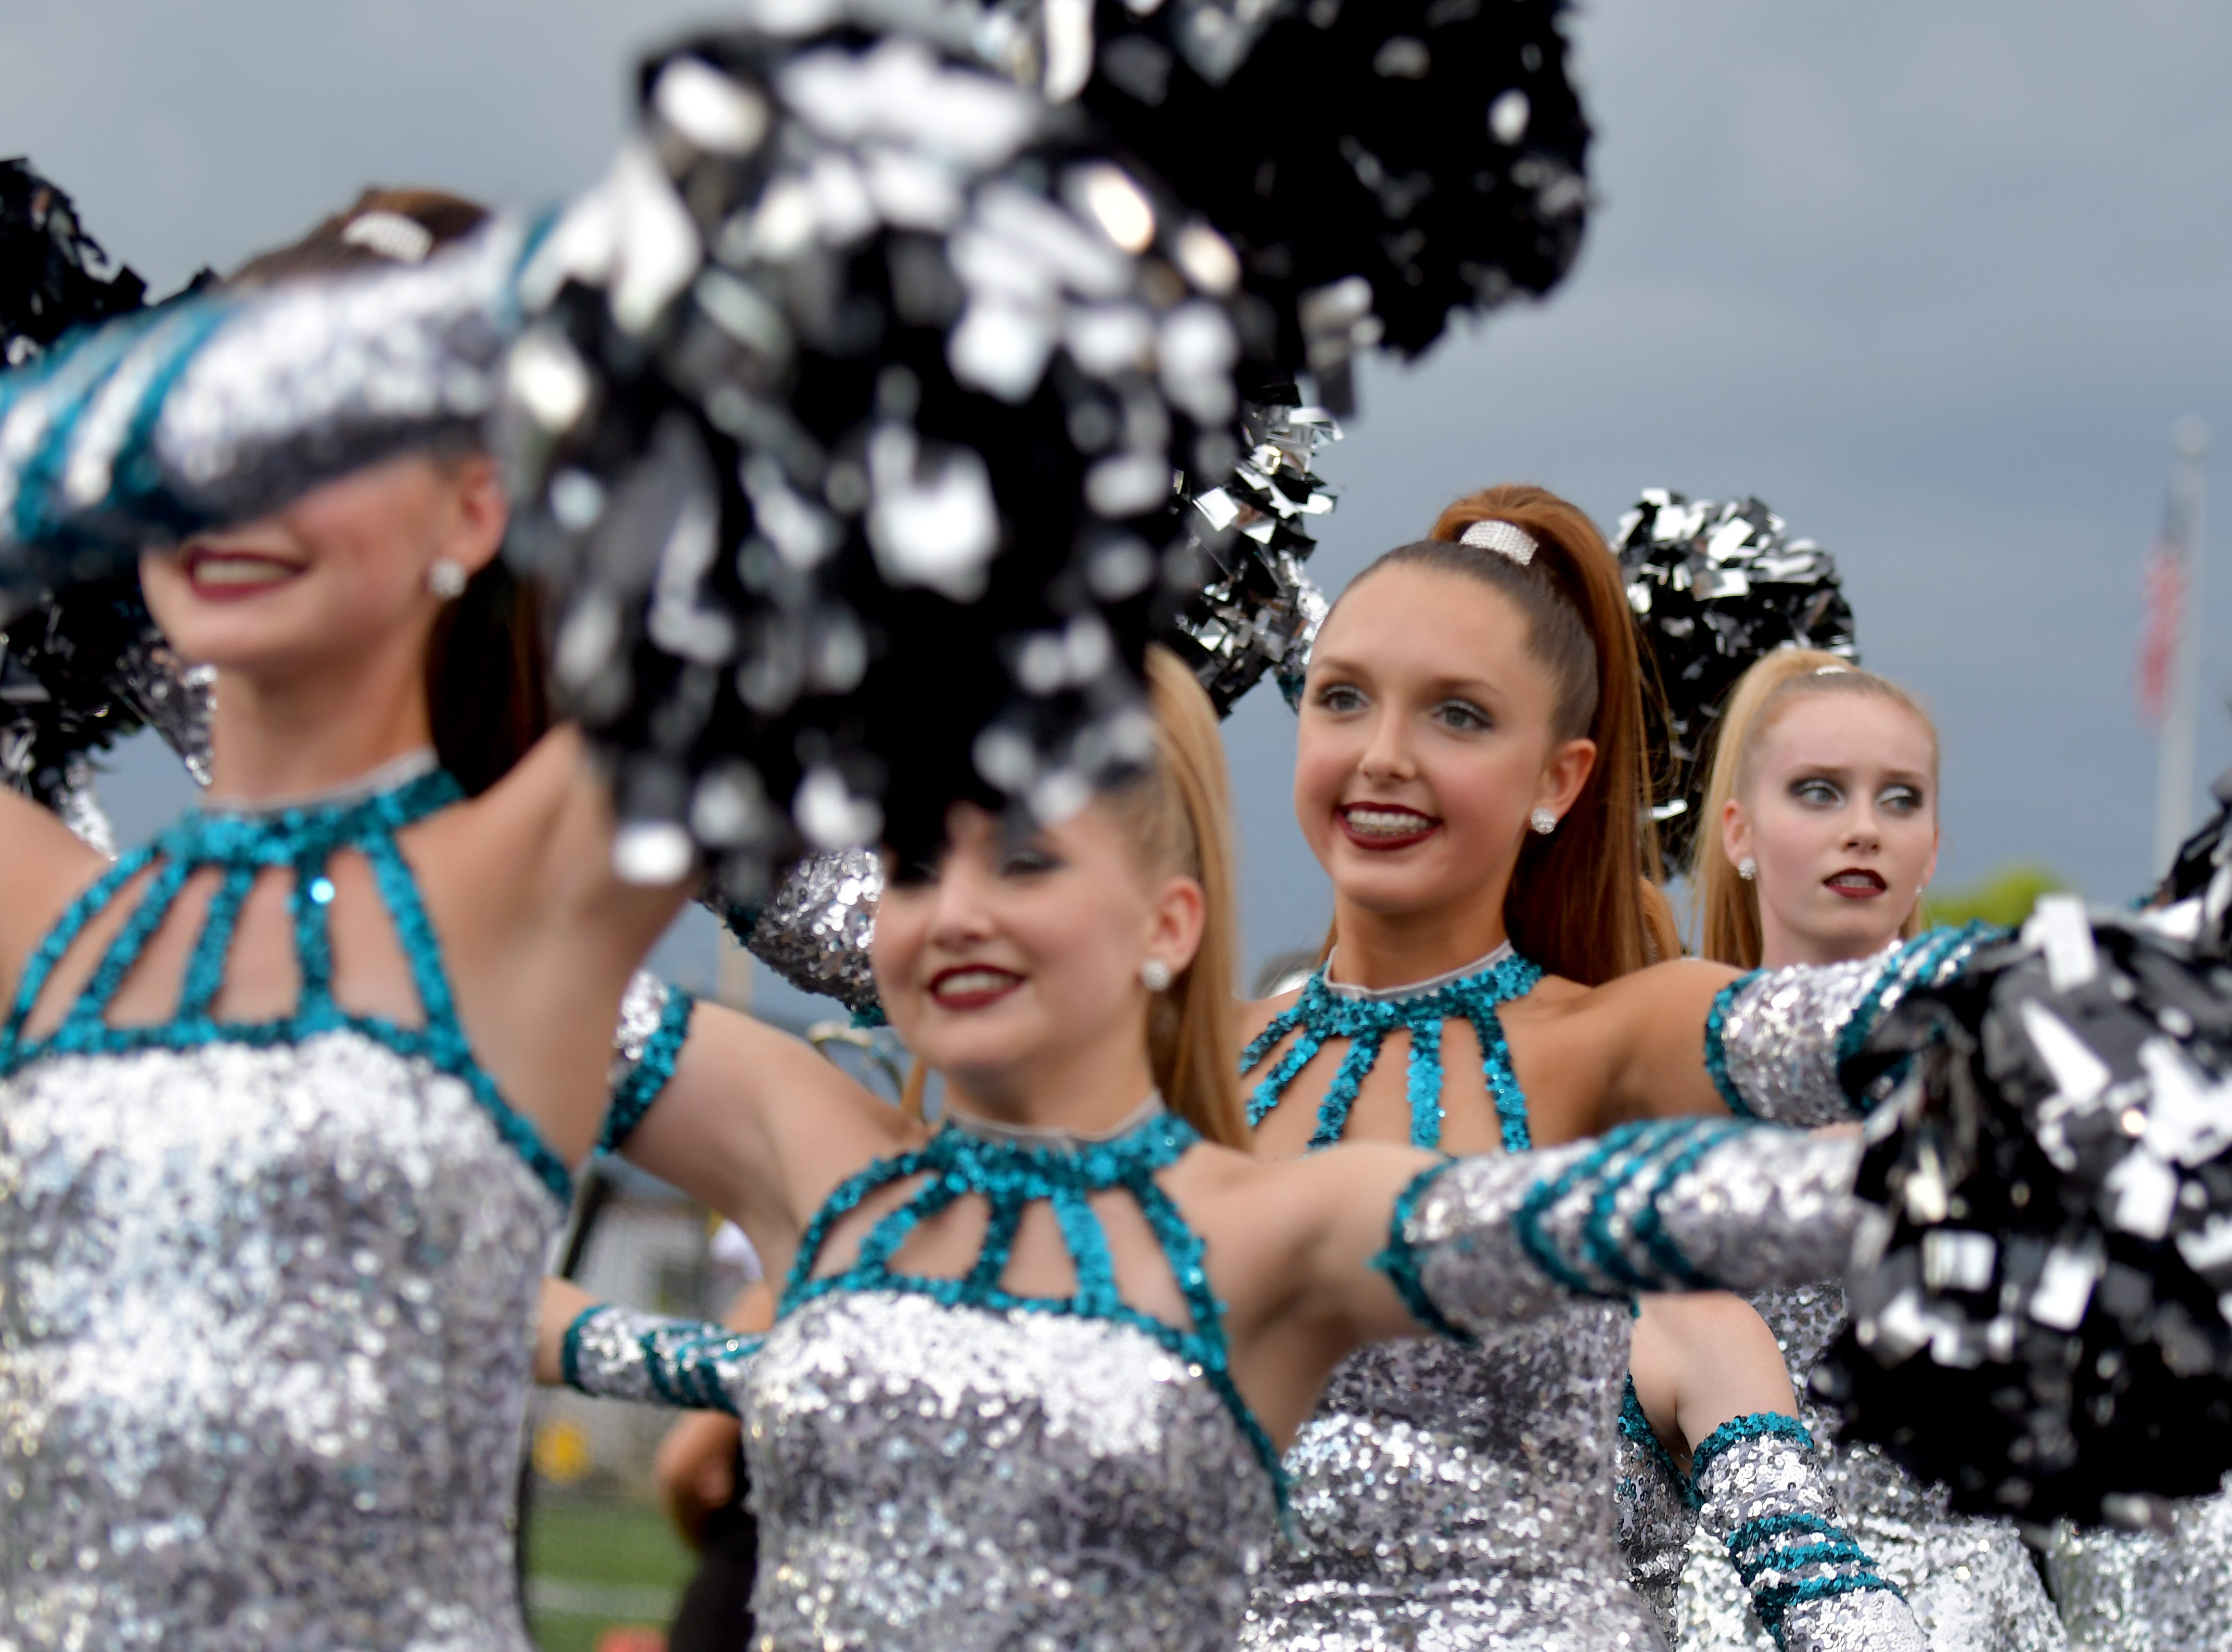 Members of the Gulf Coast High School band march onto the field before their game with Lely High School in Naples on Friday, Aug. 24, 2018.